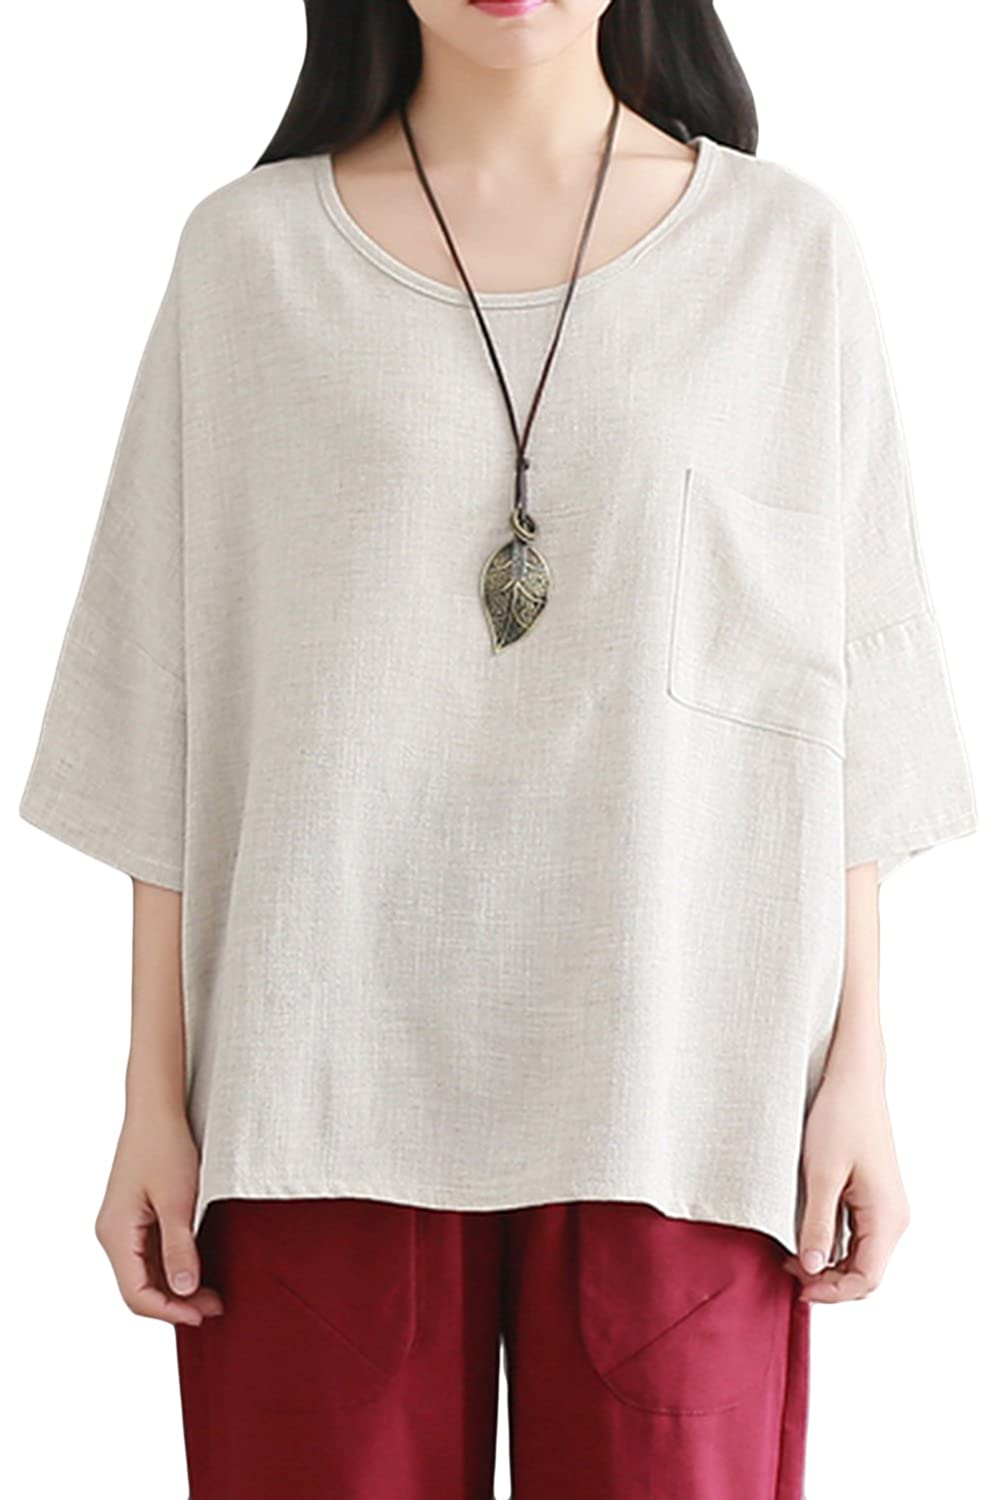 a53cbdbcc9de0 Asher fashion women summer loose fit half sleeve linen tops blouses shirts  one size beige at